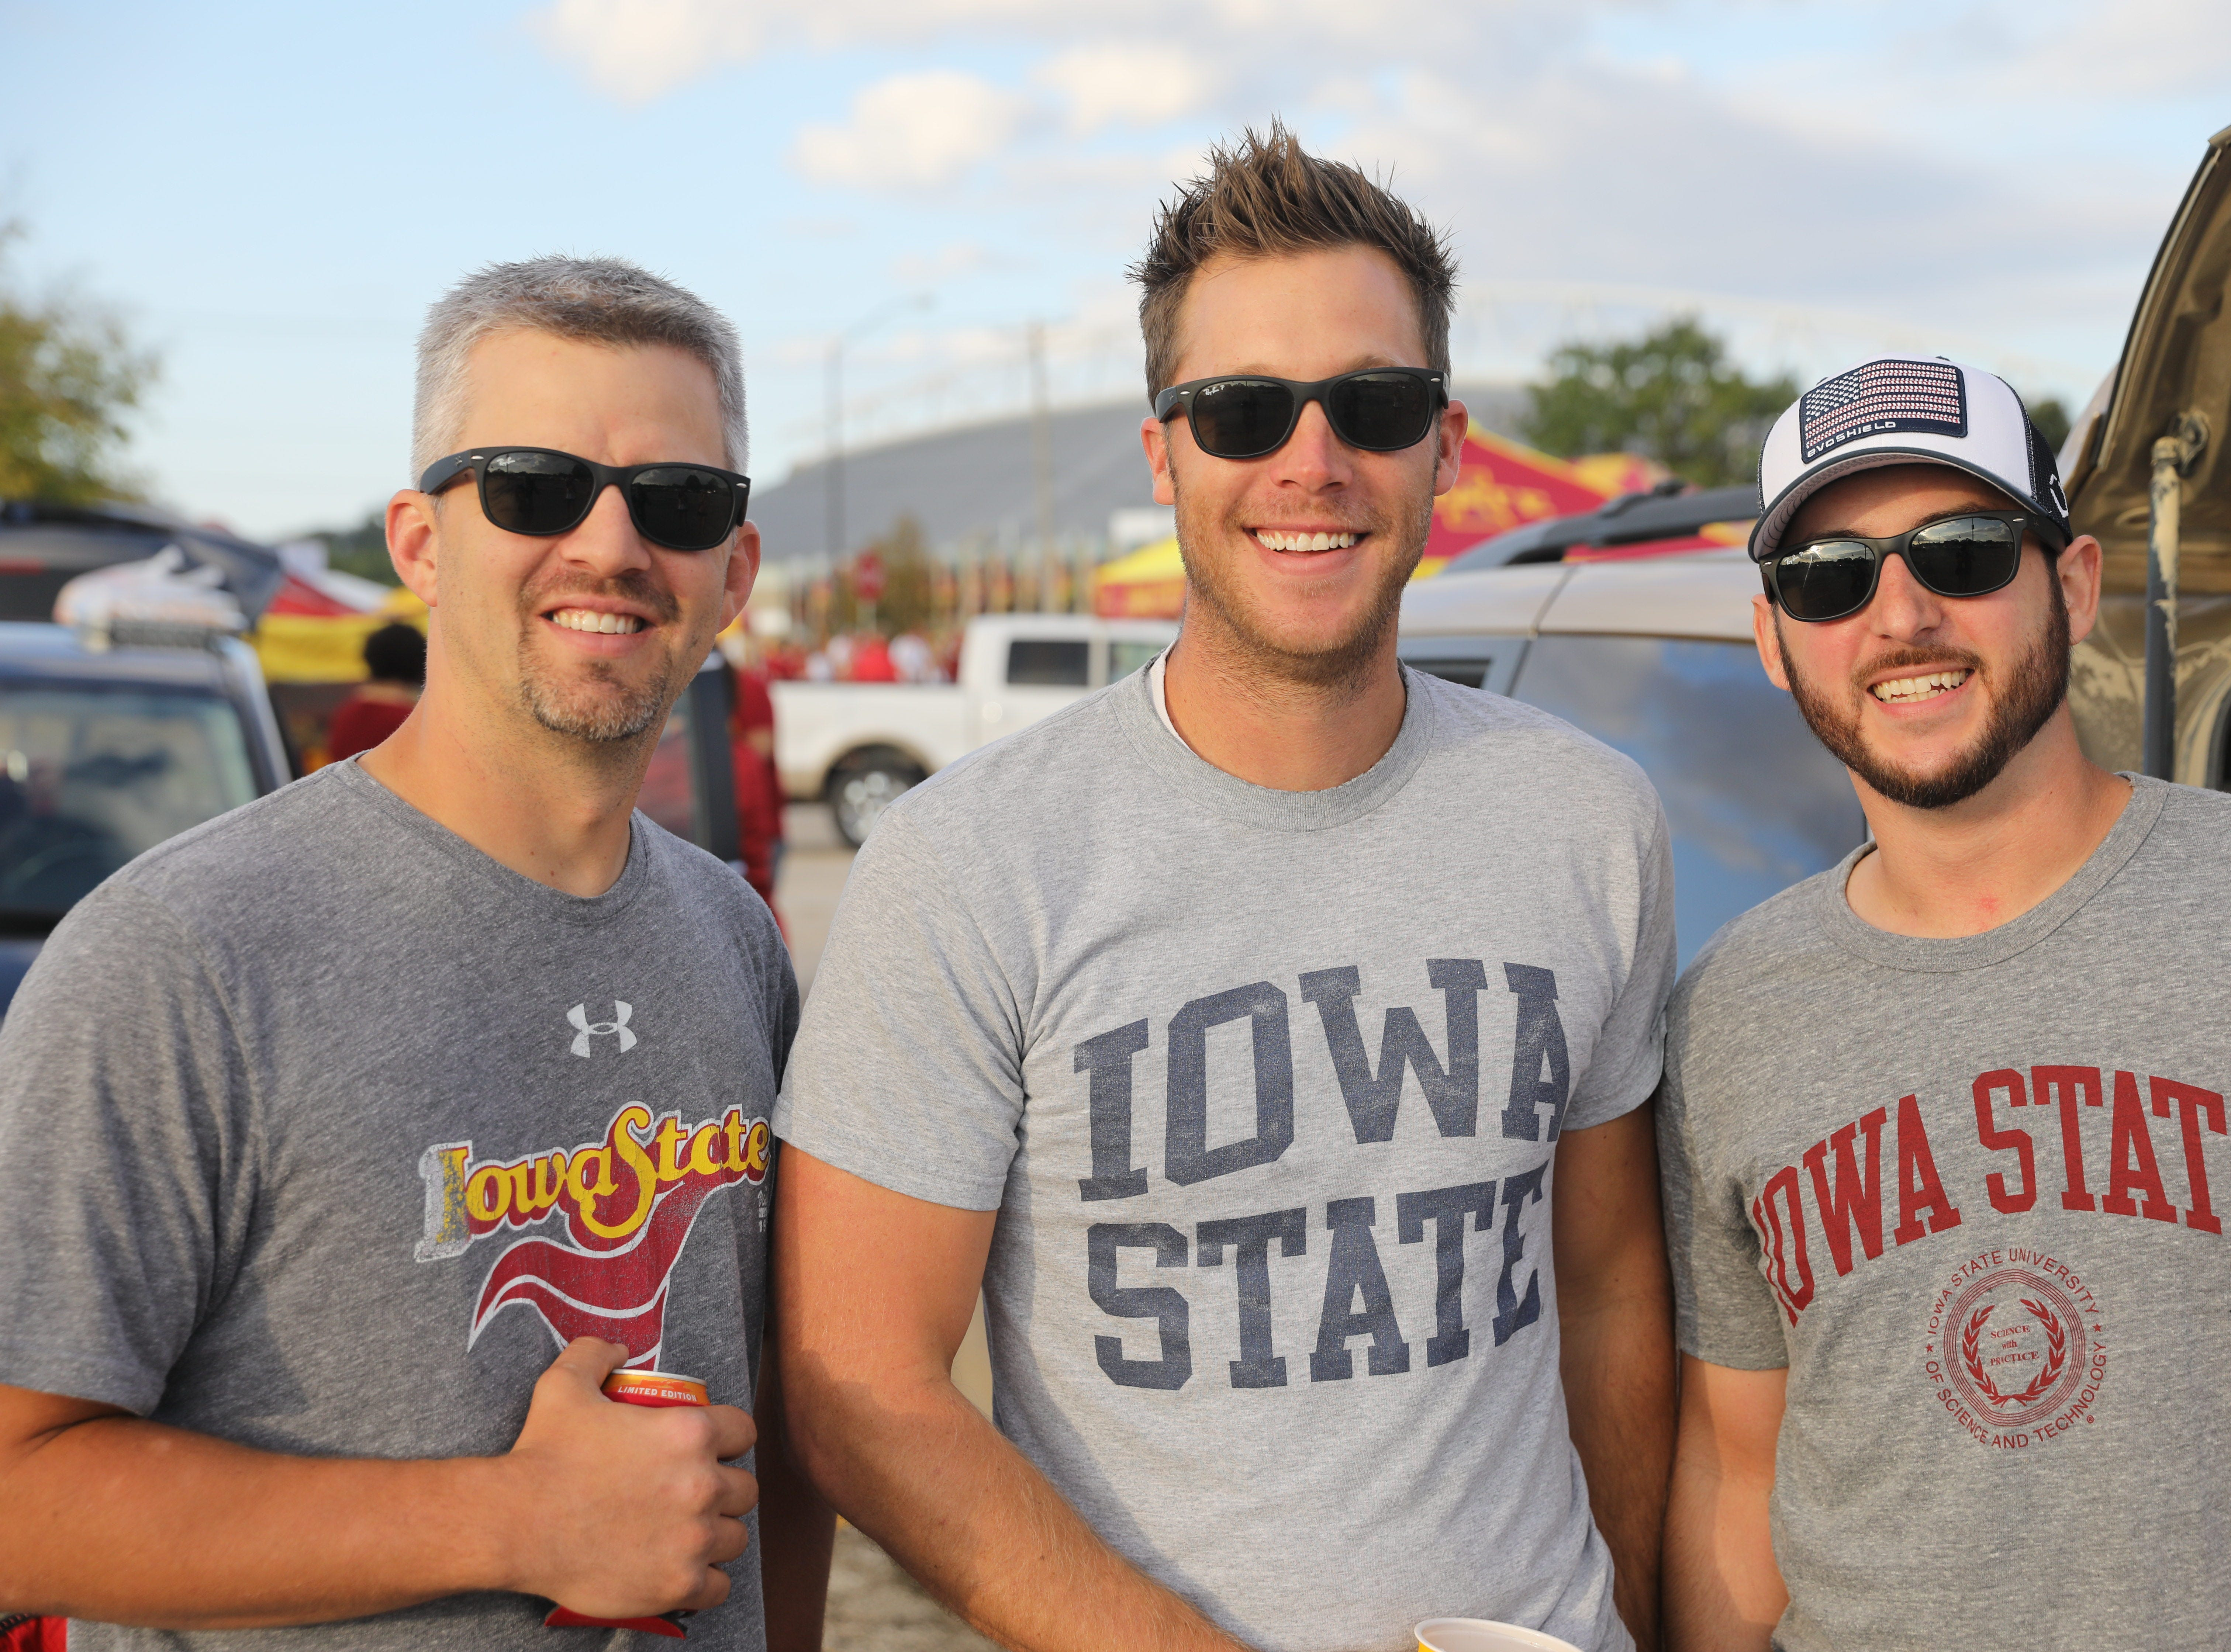 Michael Miller, 34, of Osceola (from left), Ben Wallace, 33, of Lake View, and Adam Warnemunde, 33, of Calamus Saturday, Sept. 15, 2018, before the Iowa State football game against Oklahoma in Ames.